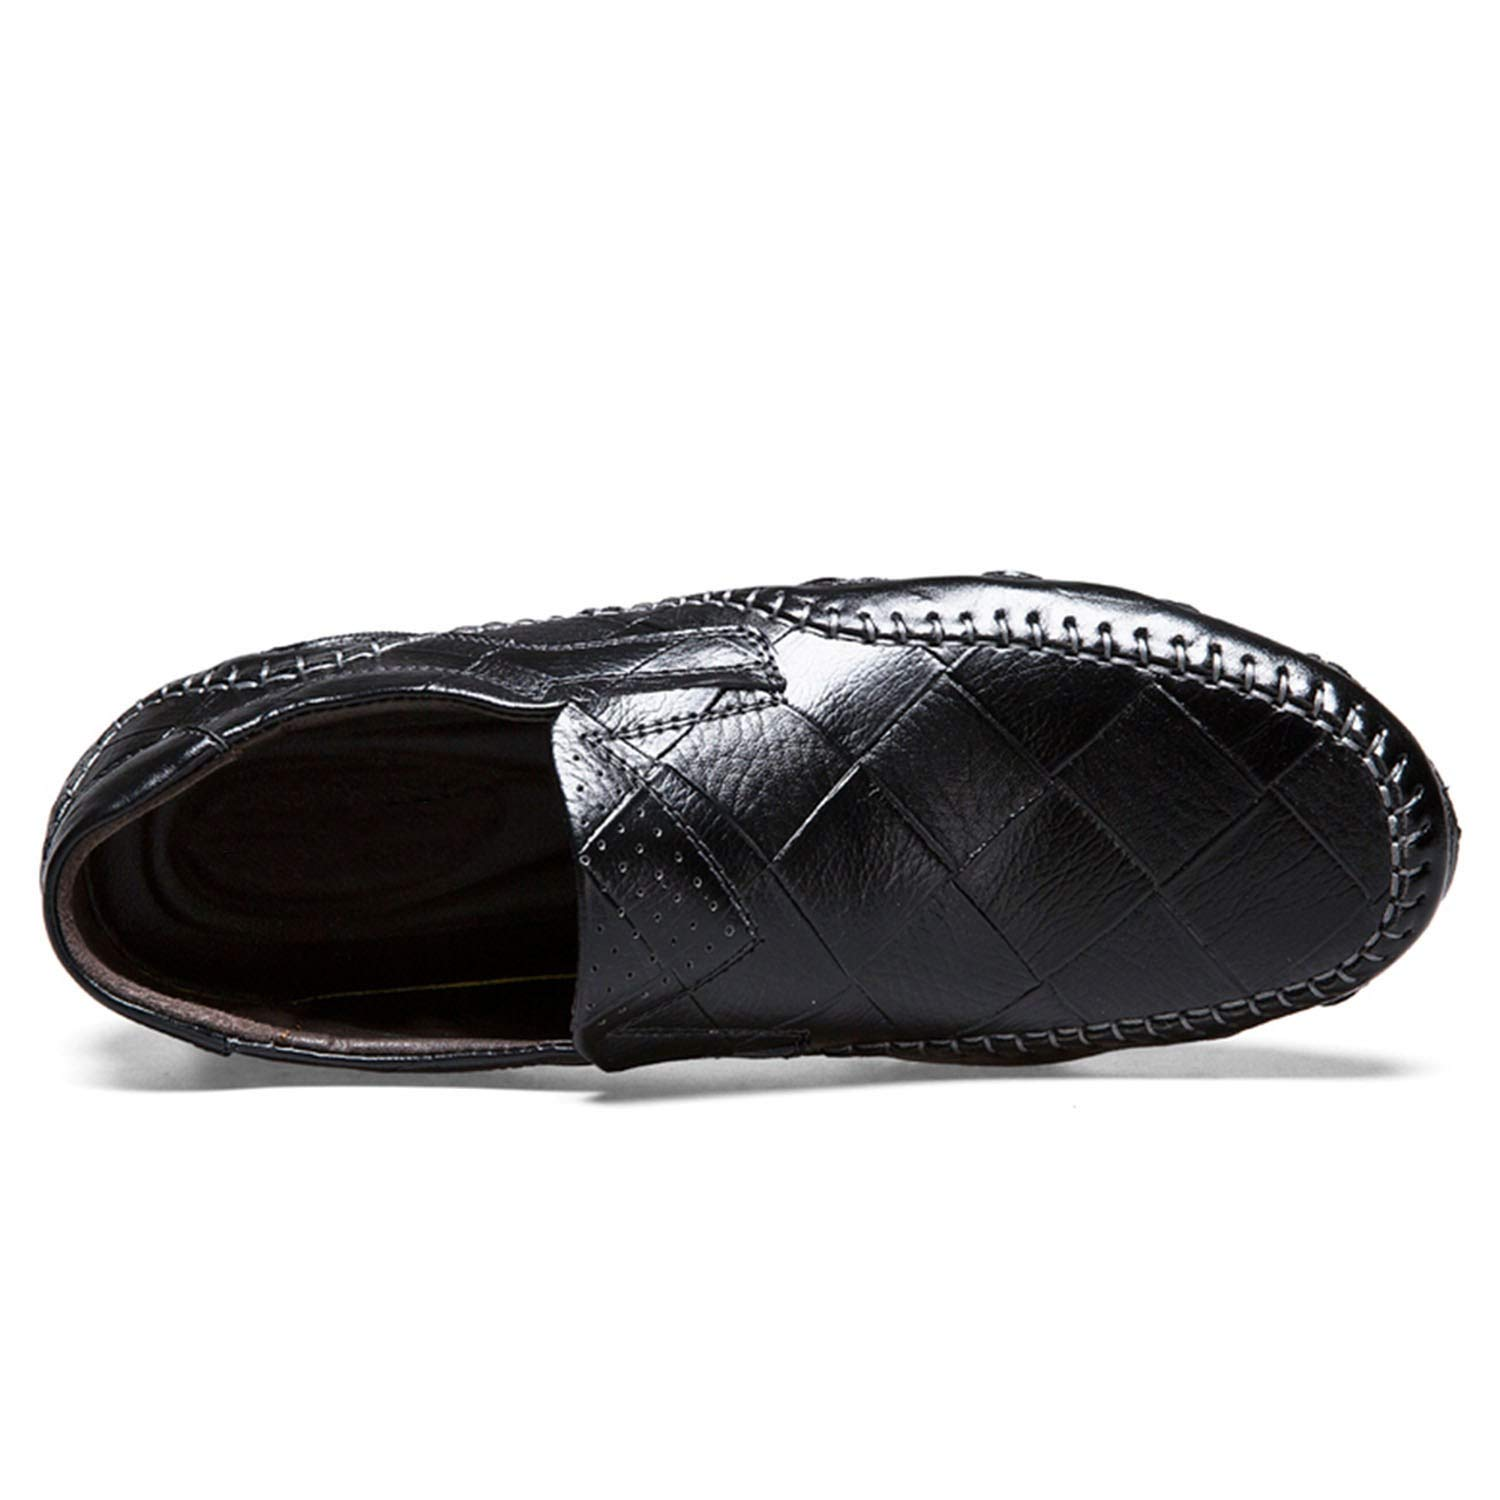 Casual Shoes Men Slip-On Loafers Moccasins Genuine Leather Flat Oxford Men Male Adult Sneakers Plus Size